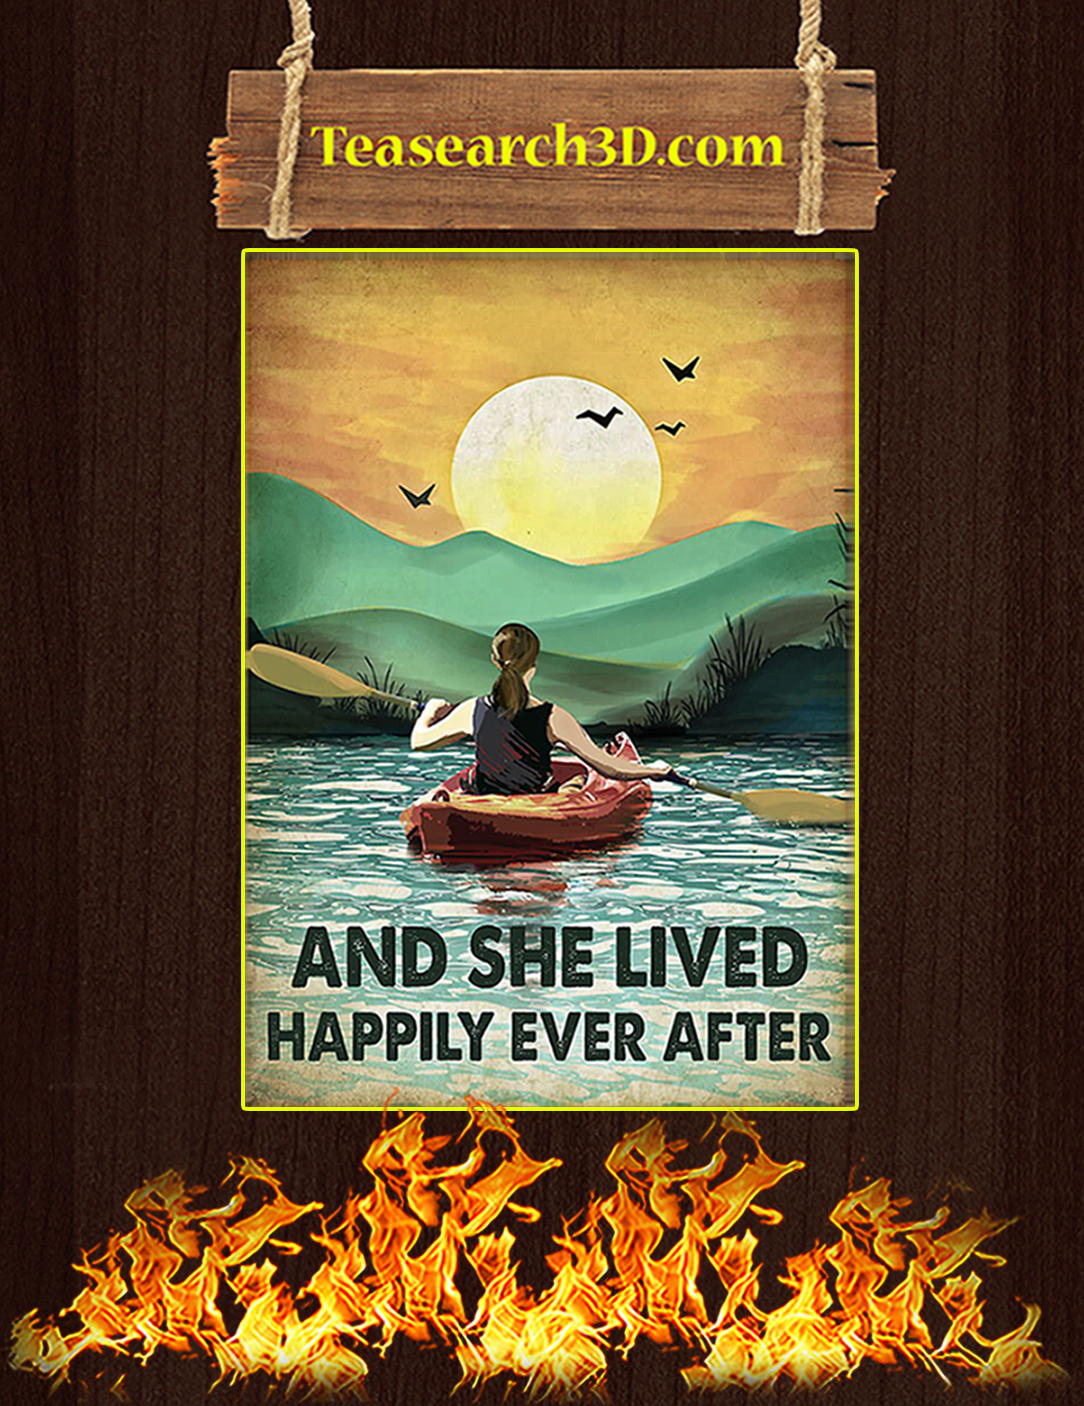 Rowing and she lived happily ever after poster A2